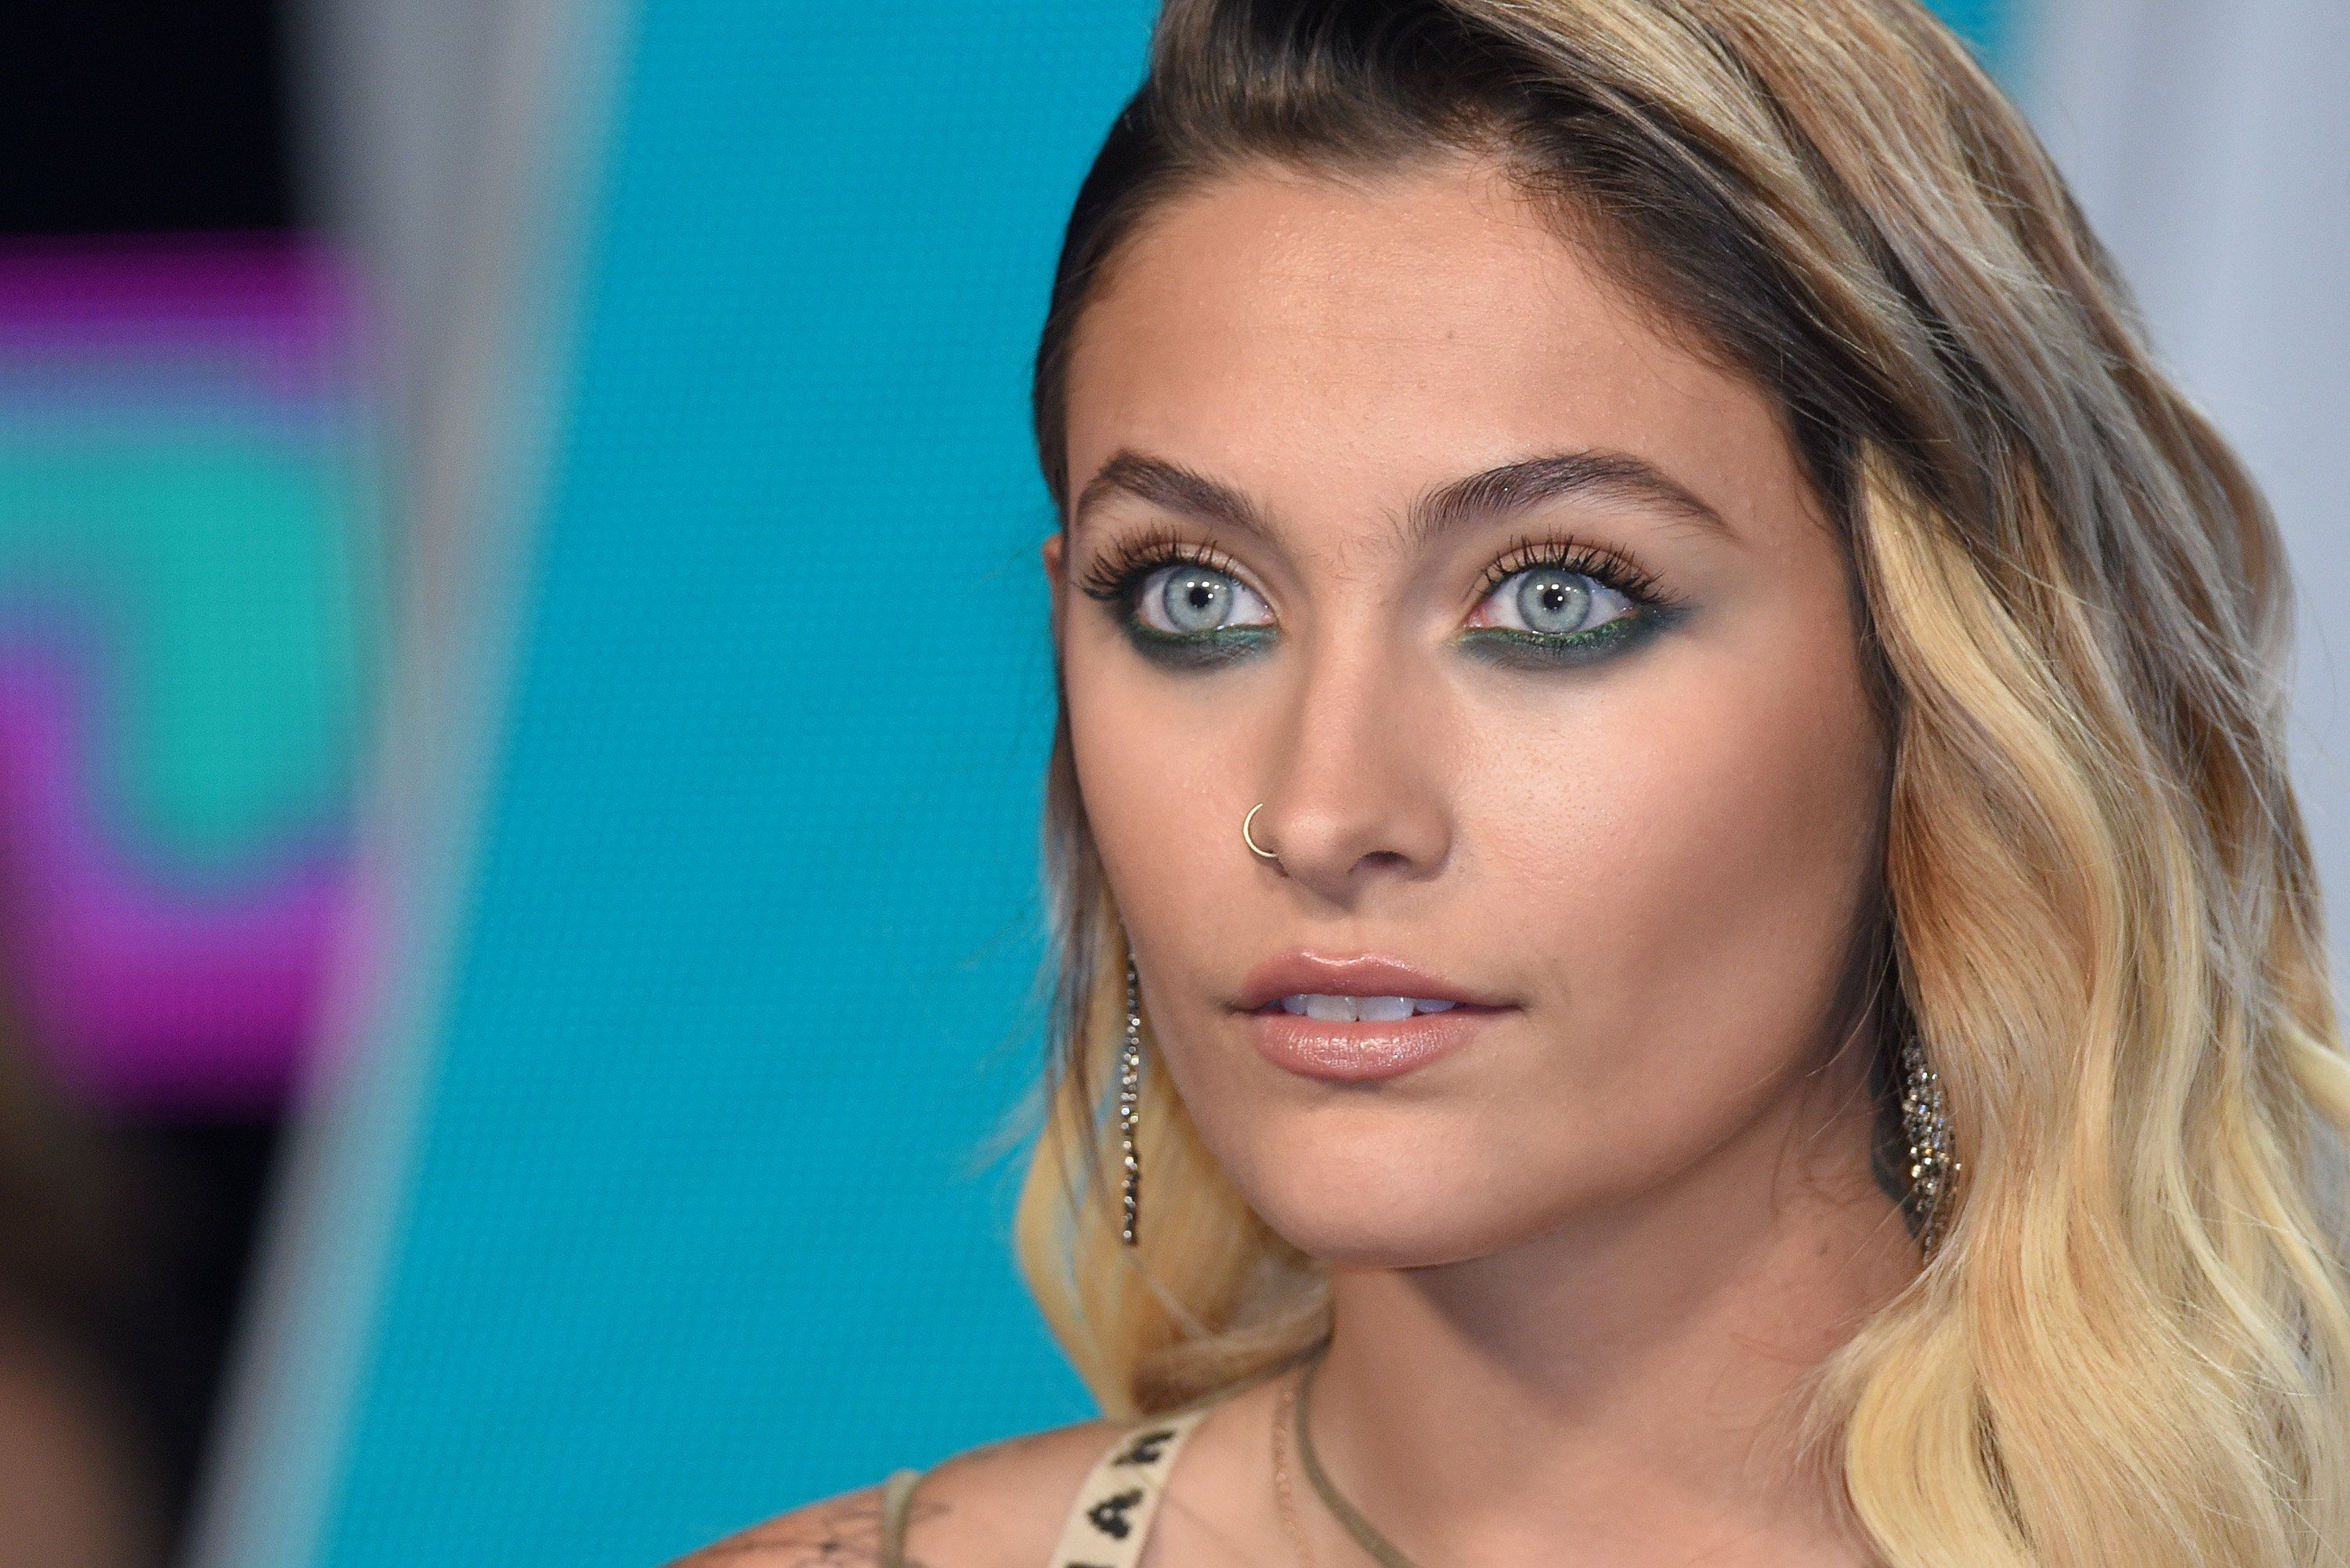 Beautiful Chest And Belly Tattoo Designs For Those Inspired By Paris Jackson's New